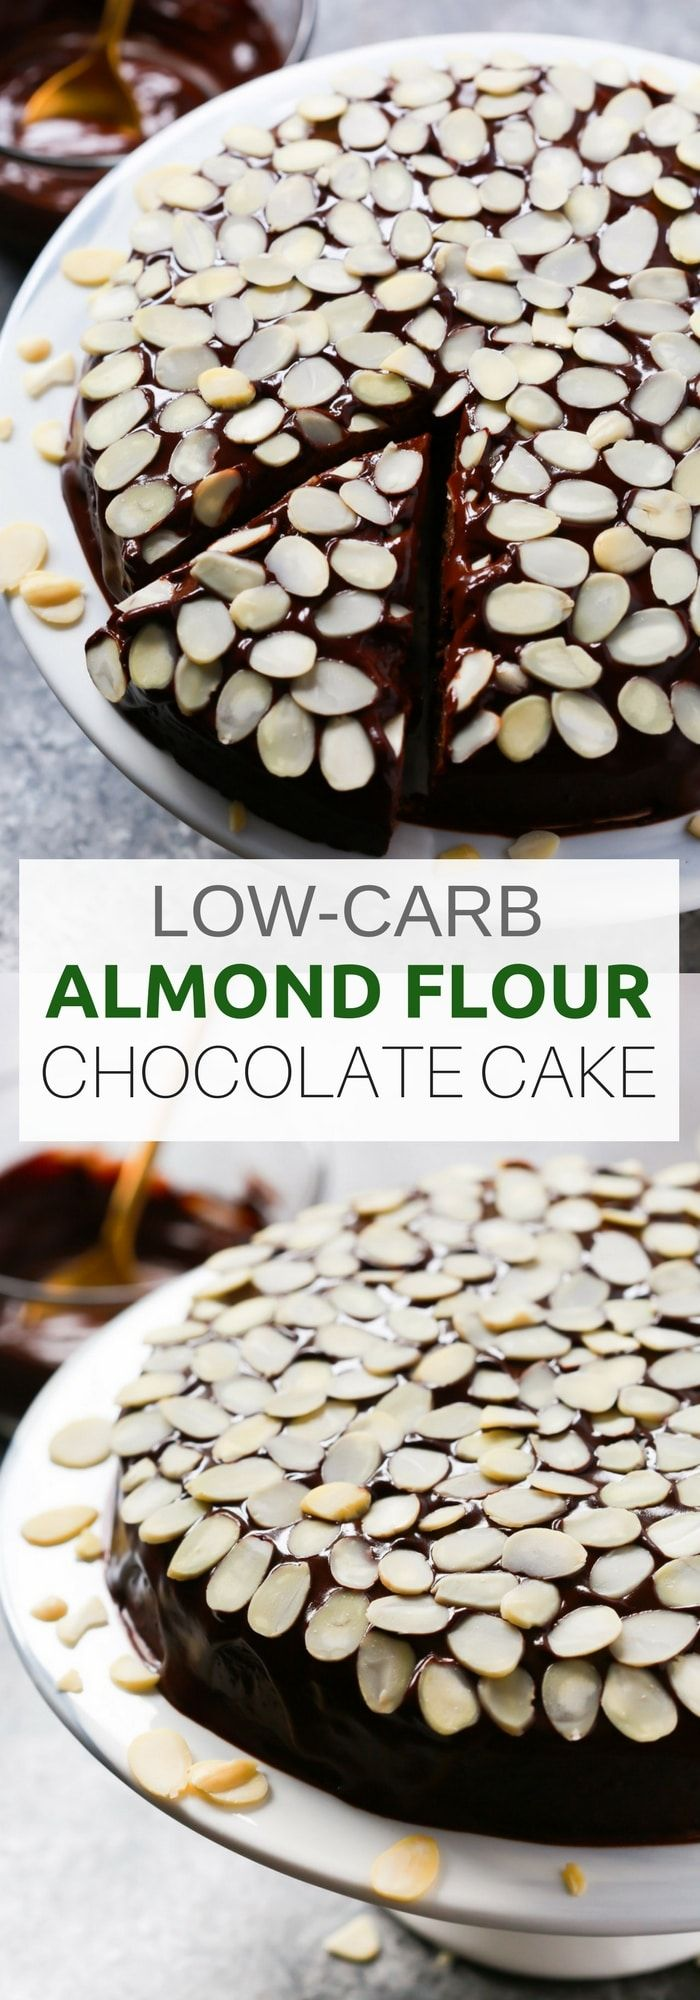 Healthier Low-carb Almond Flour Chocolate Cake for the ...